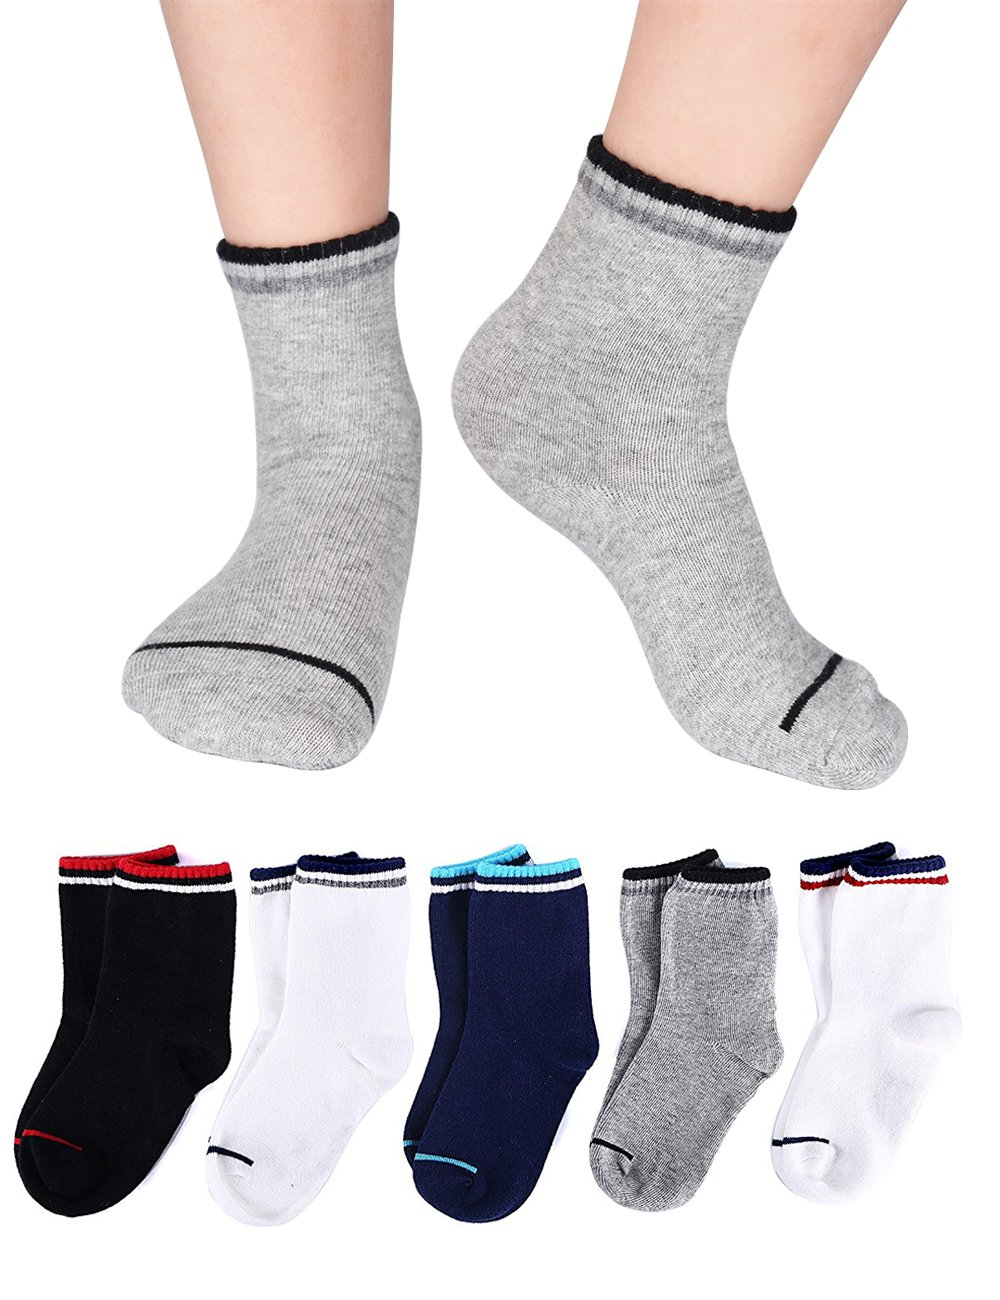 Kids Youth Preschool Boys and Girls Striped Athletic Crew Quarter Basic Socks Cotton Seamless Cushion for Sports Running 5/10 Pair Pack (10 Pairs/6-8 years old)